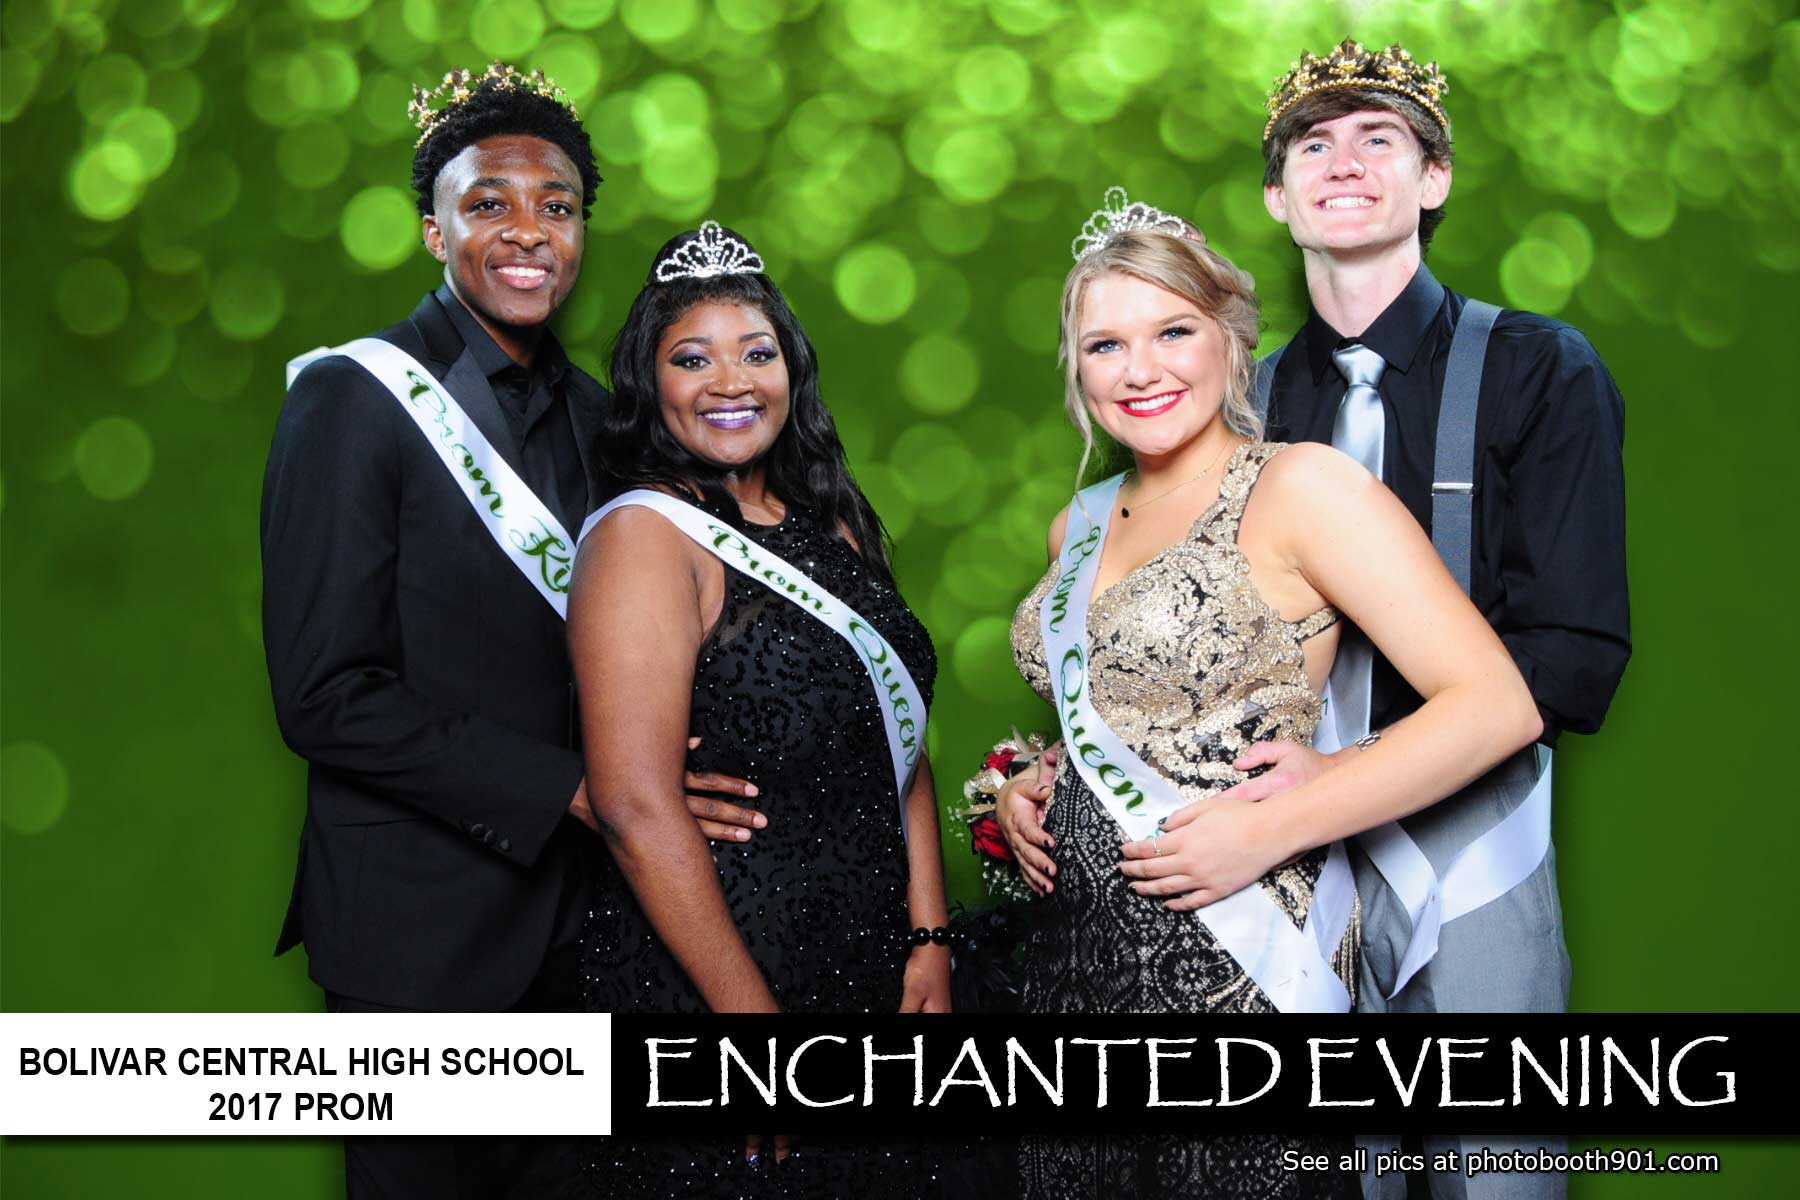 Bolivar Central High School Prom Photo Booth